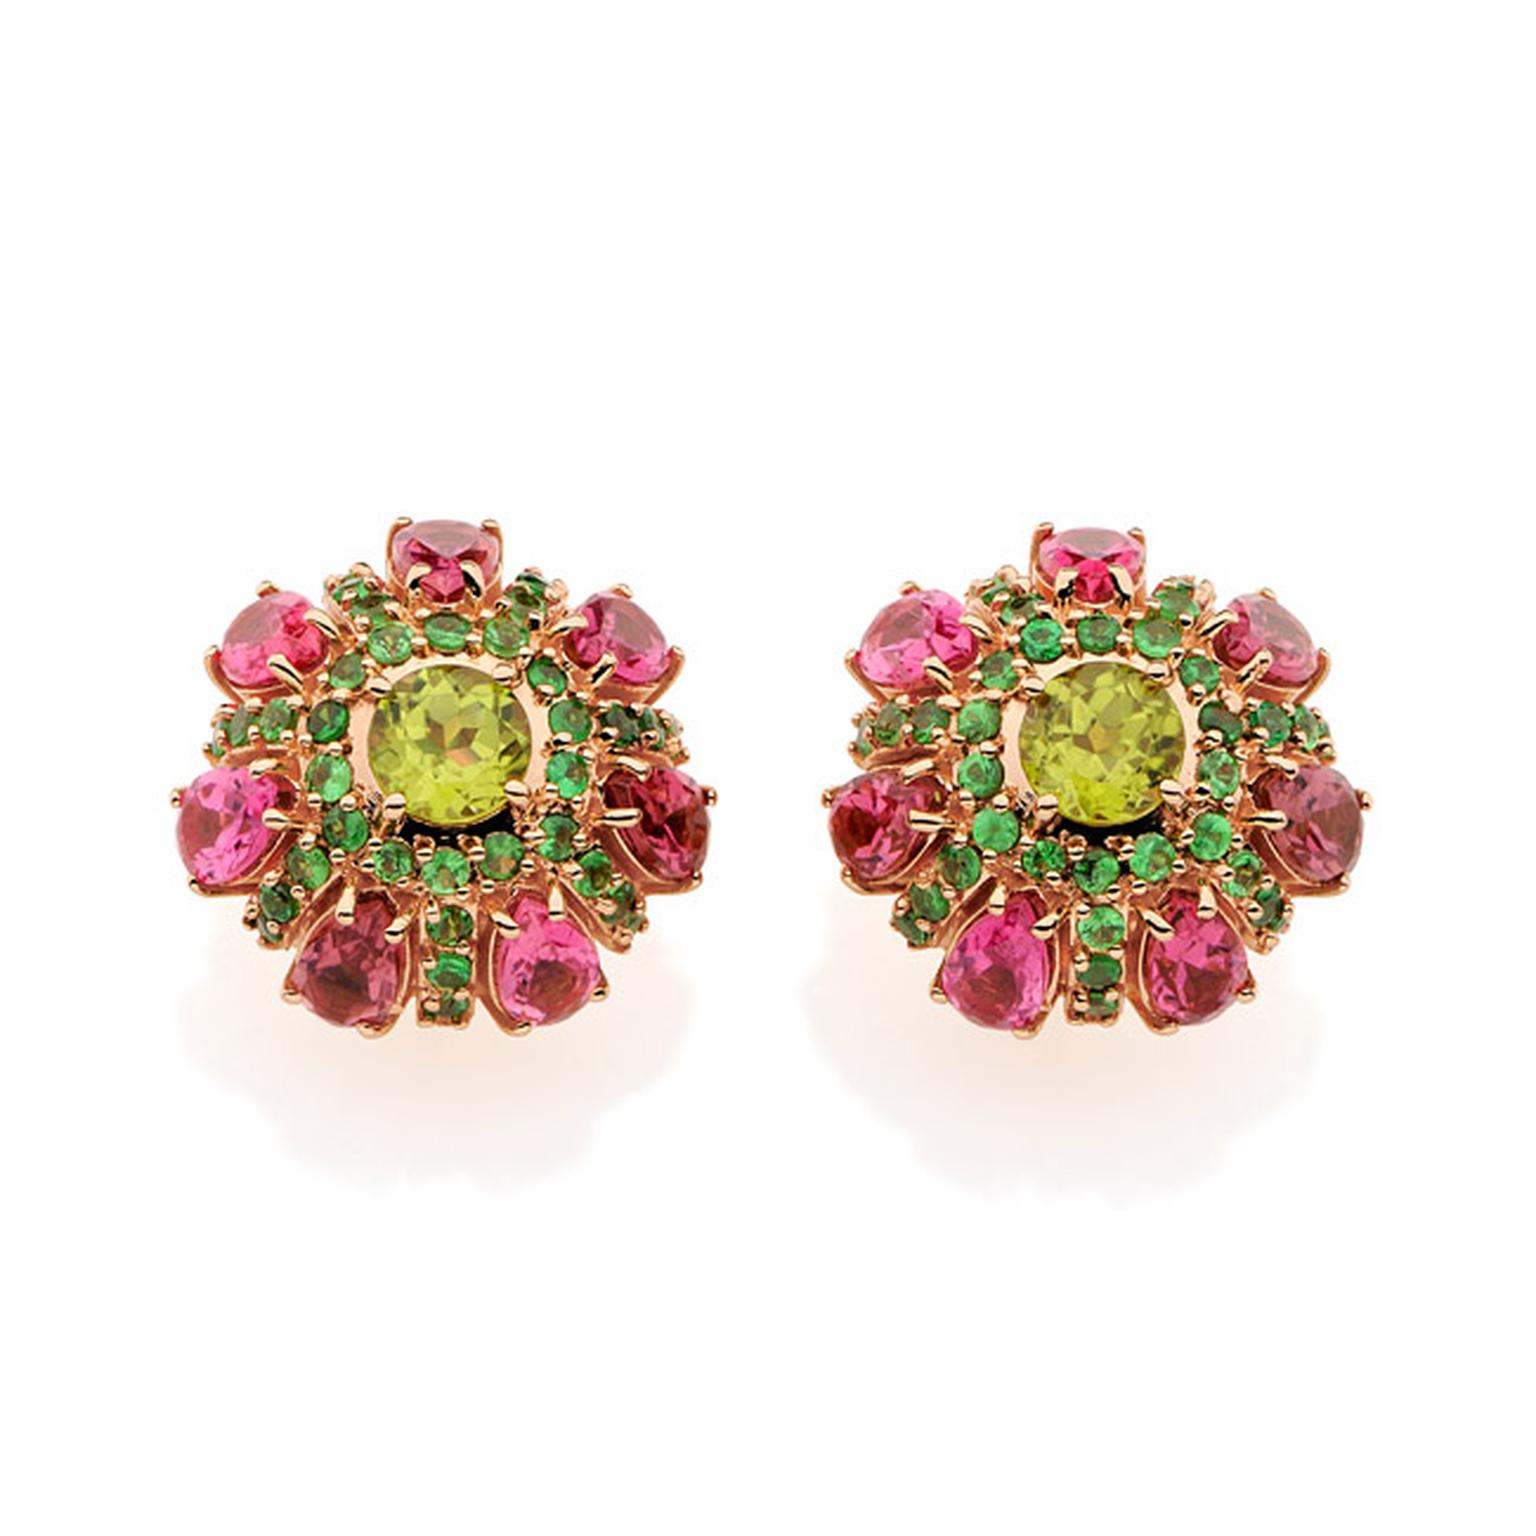 Carla-Amorim-Vitral-earrings-main